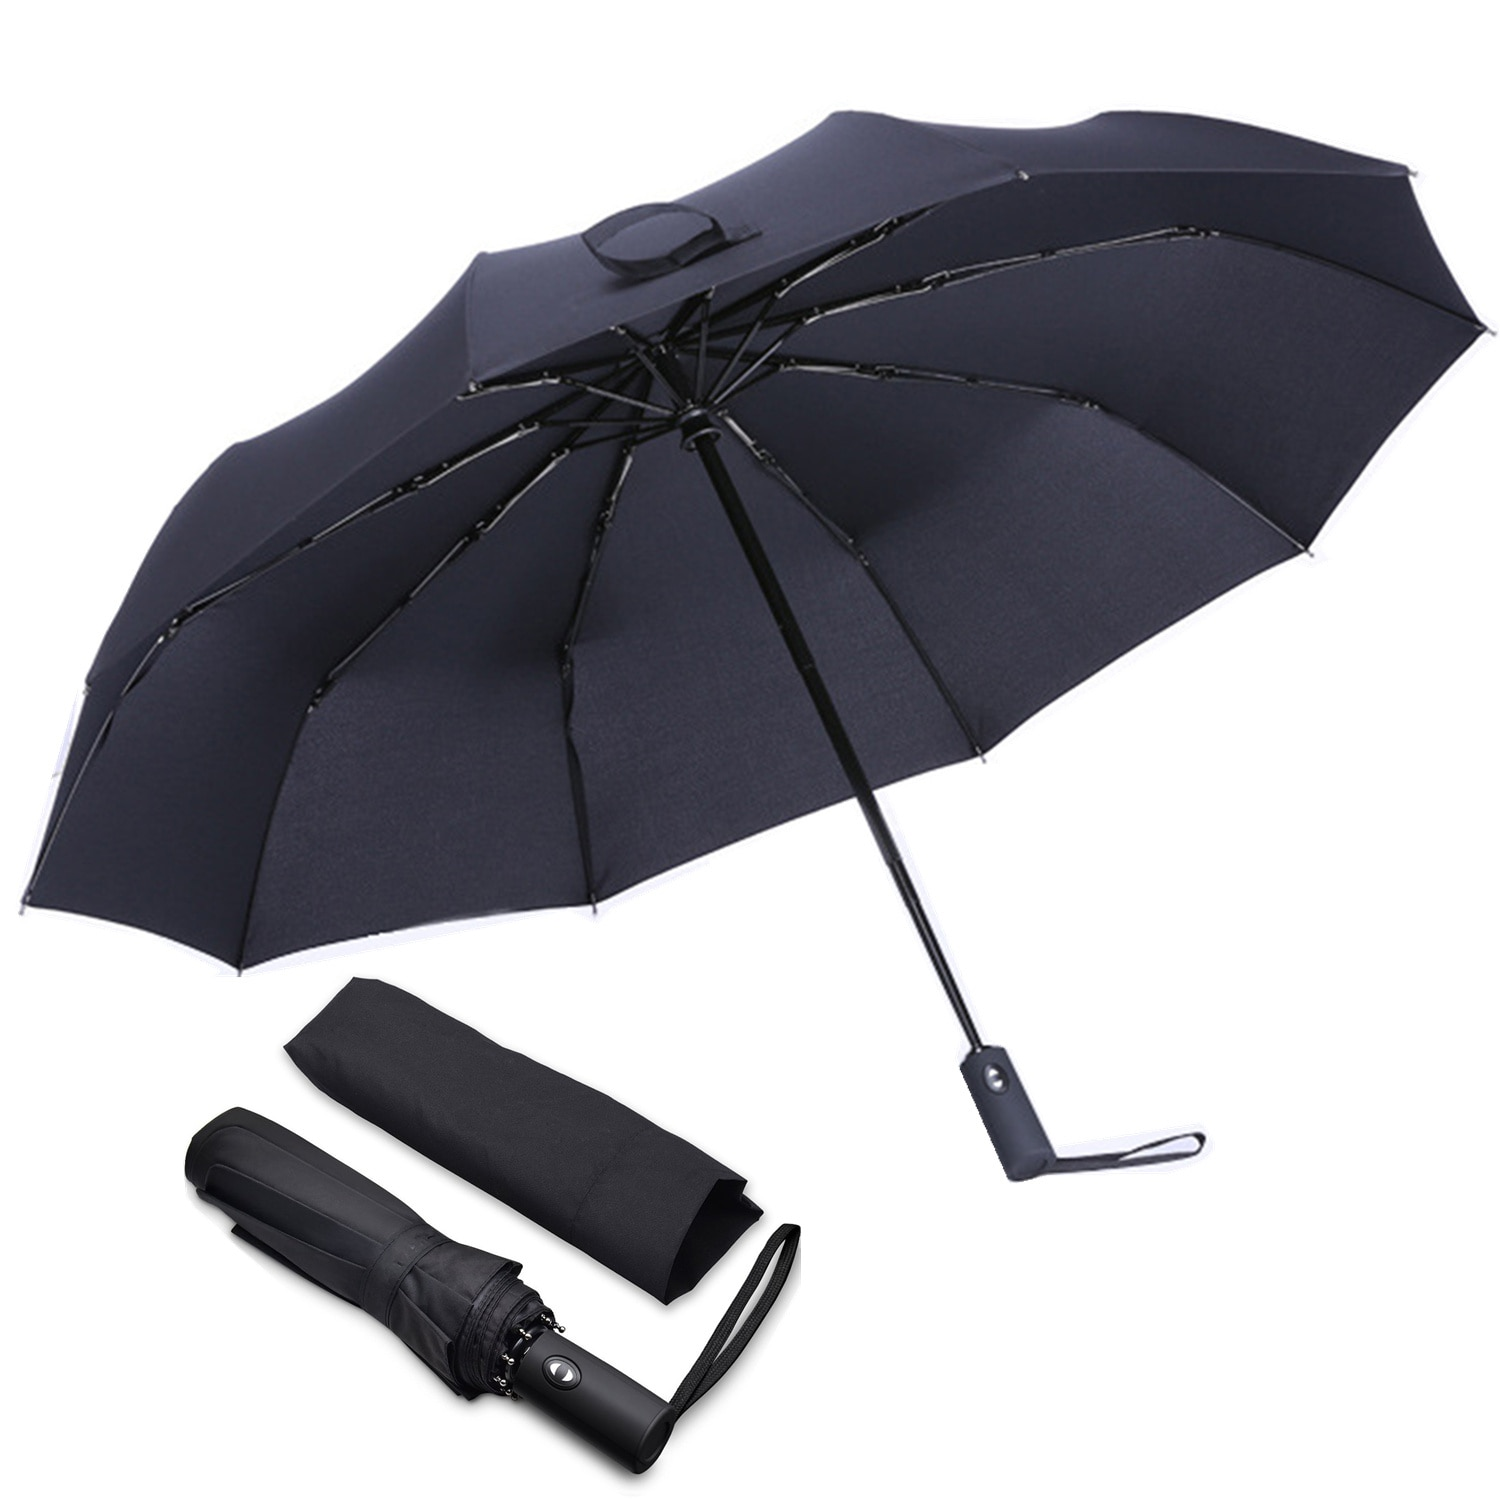 YOOAP folding umbrella windproof automatic stable Compact and durable lightweight ergonomic handle adult